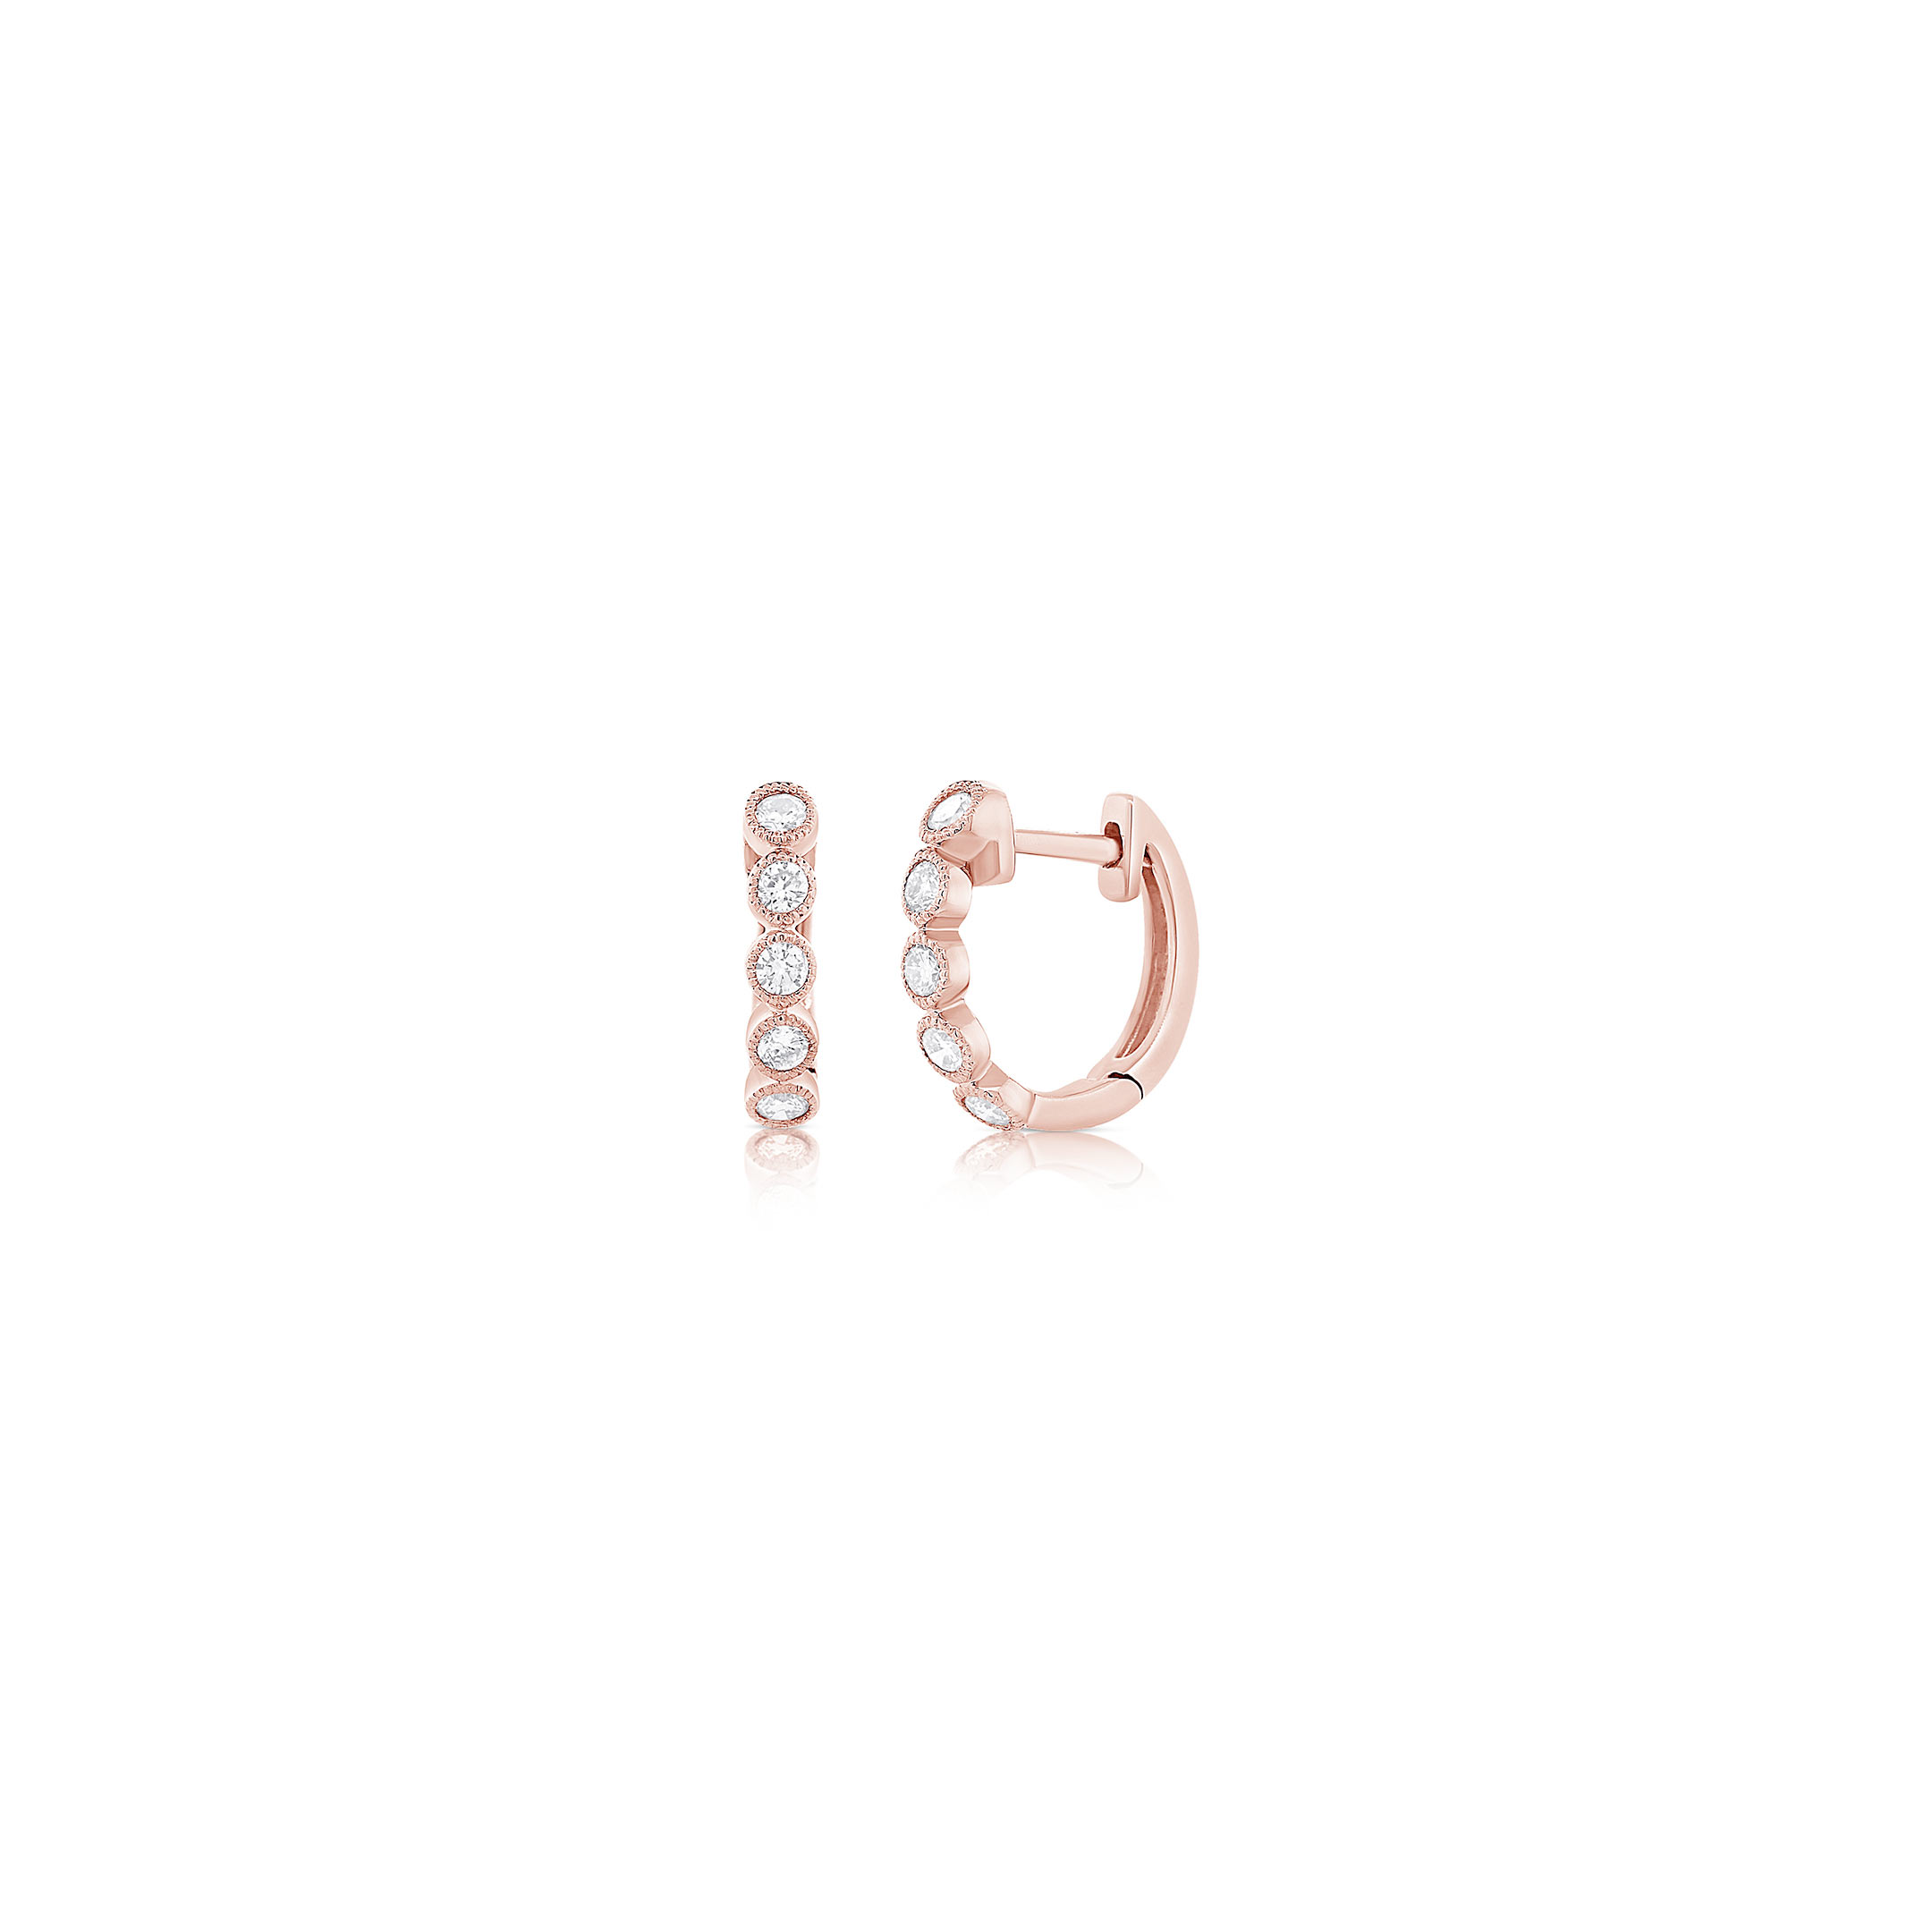 Pink Gold Huggie Earrings - 14k & Diamonds